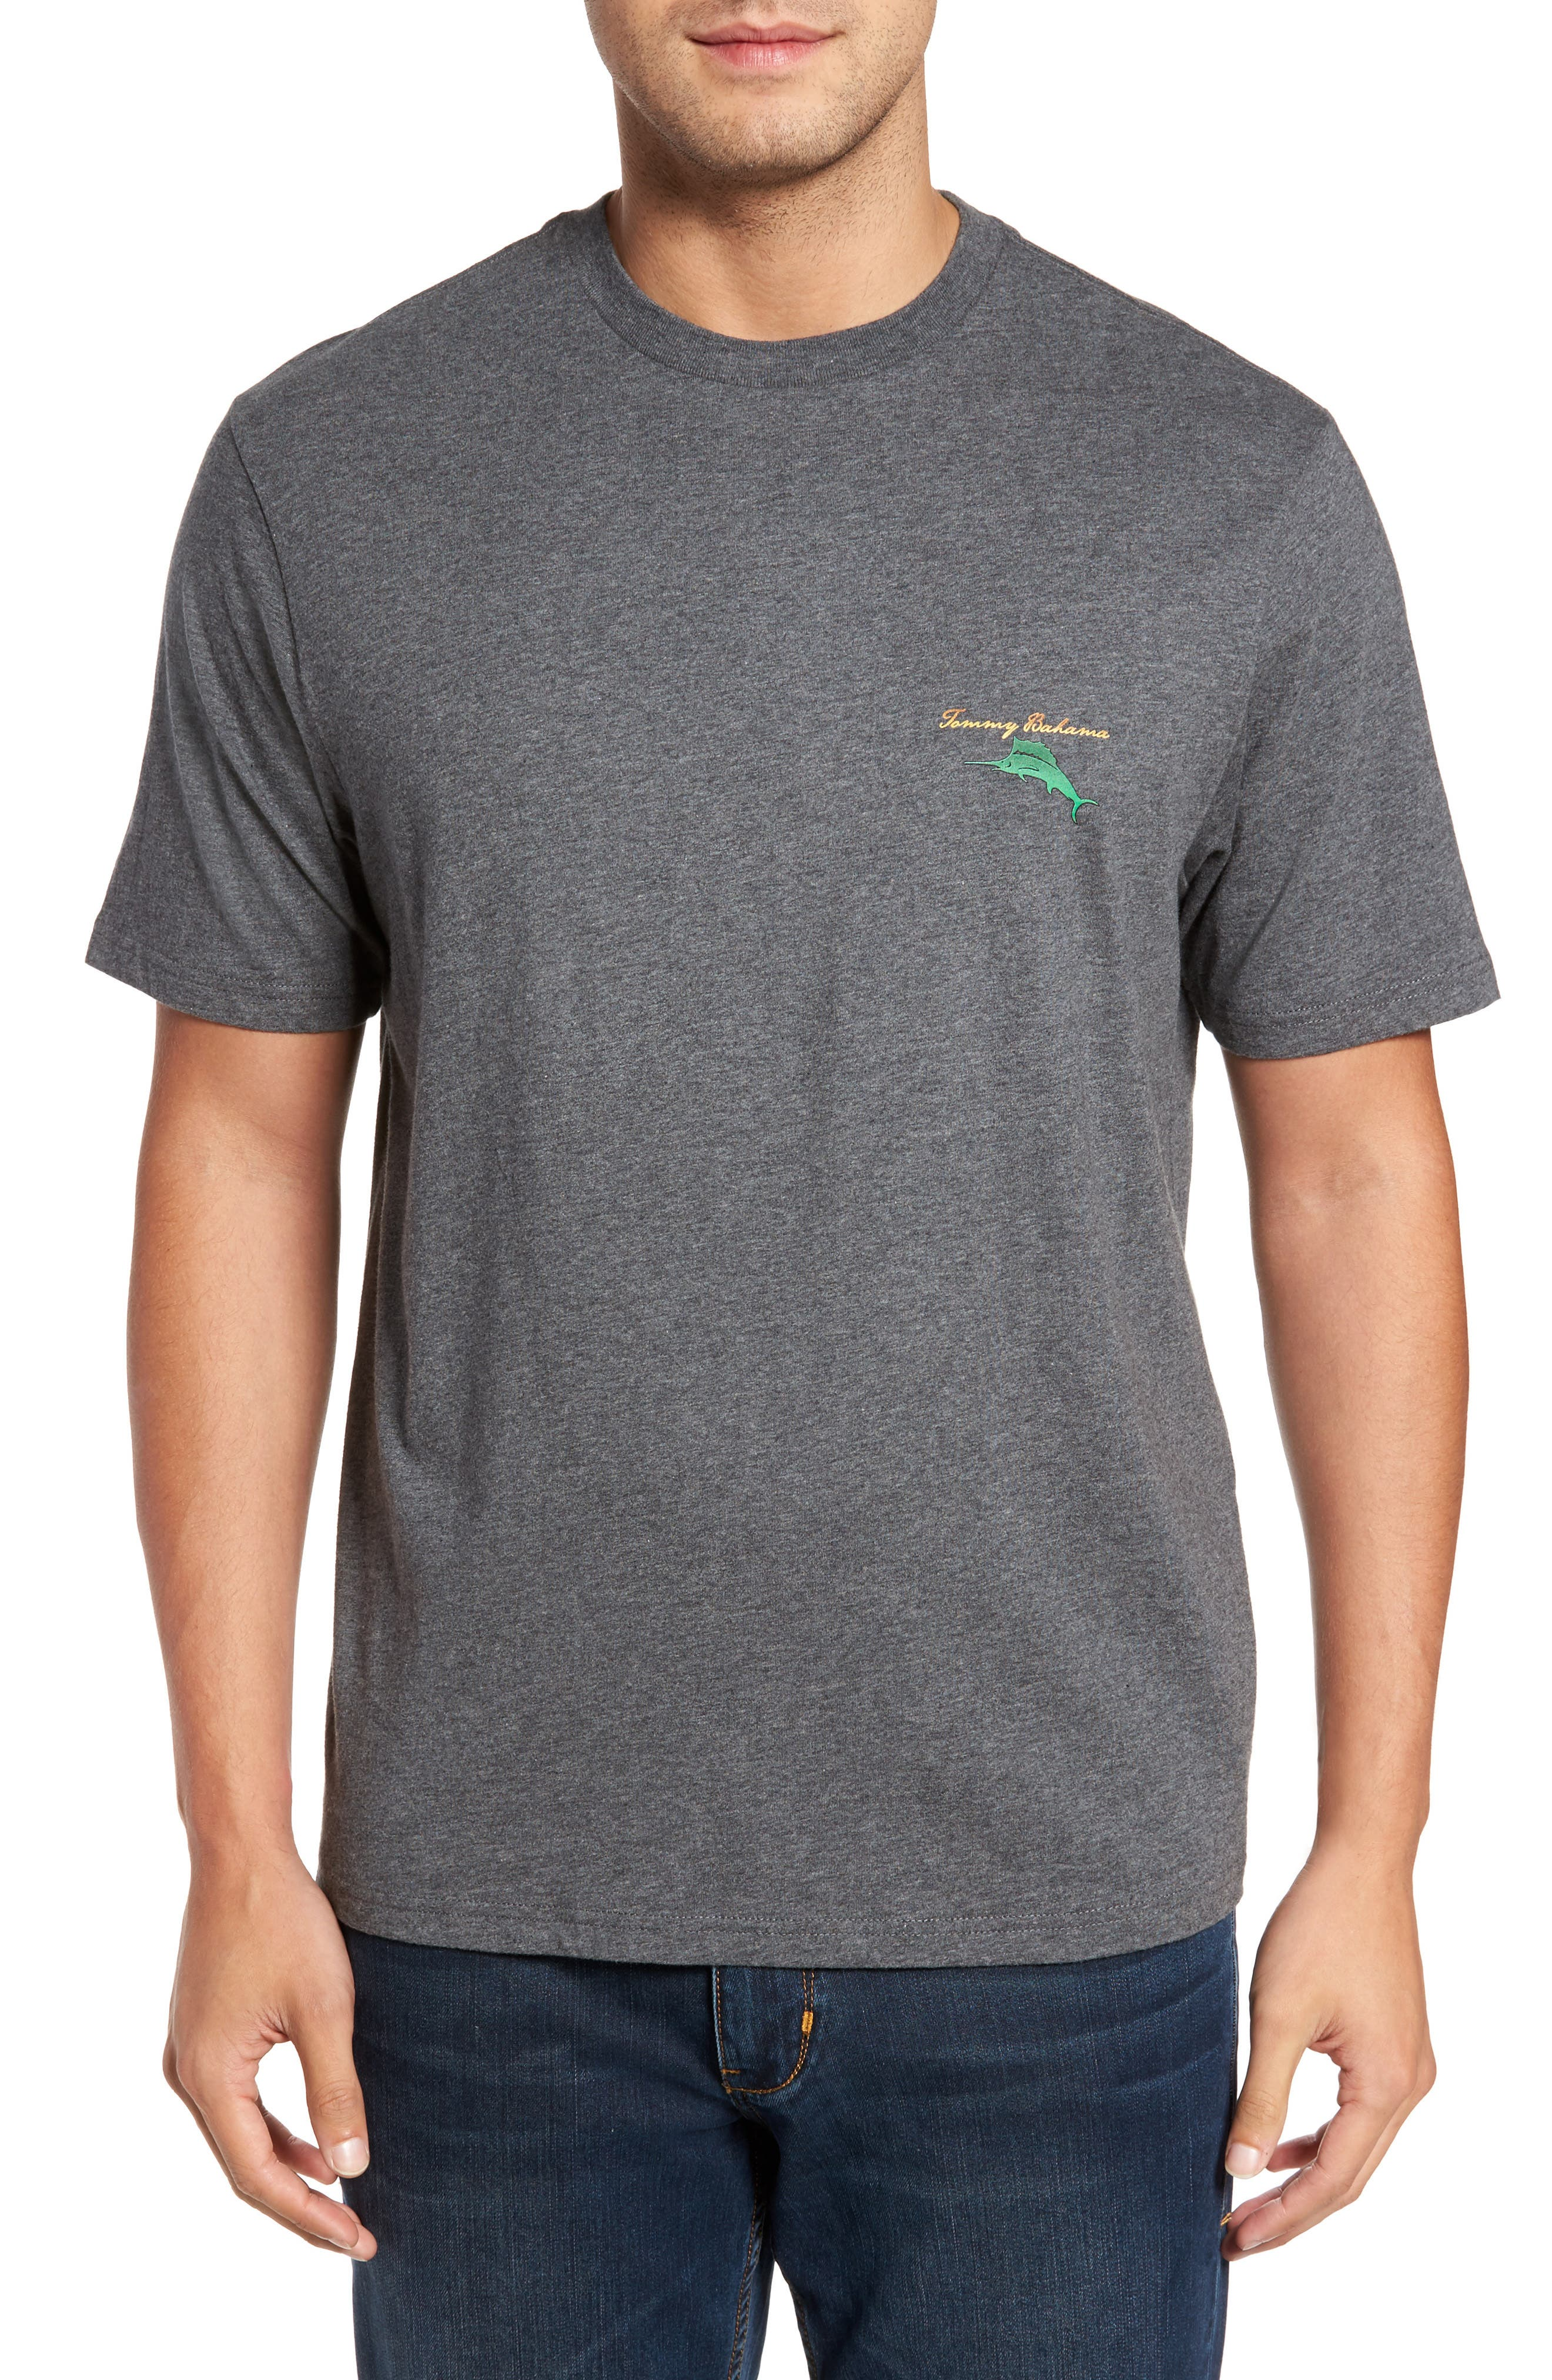 Alternate Image 1 Selected - Tommy Bahama The Fire Is So Delightful Graphic T-Shirt